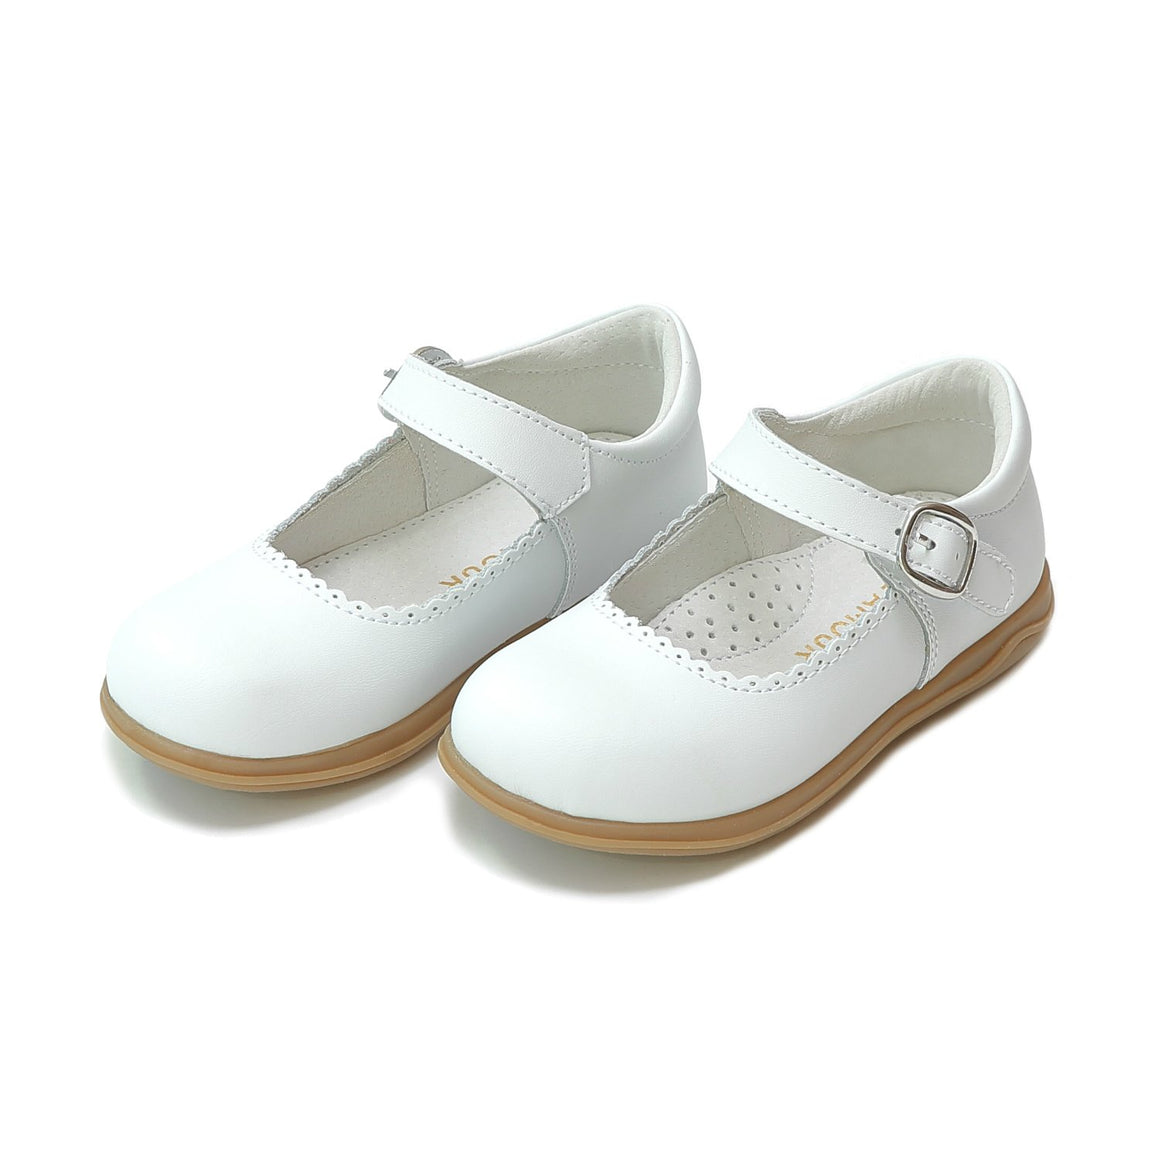 girls white leather scalloped mary jane shoes from L'Amour, available at Threadfare Children's Boutique